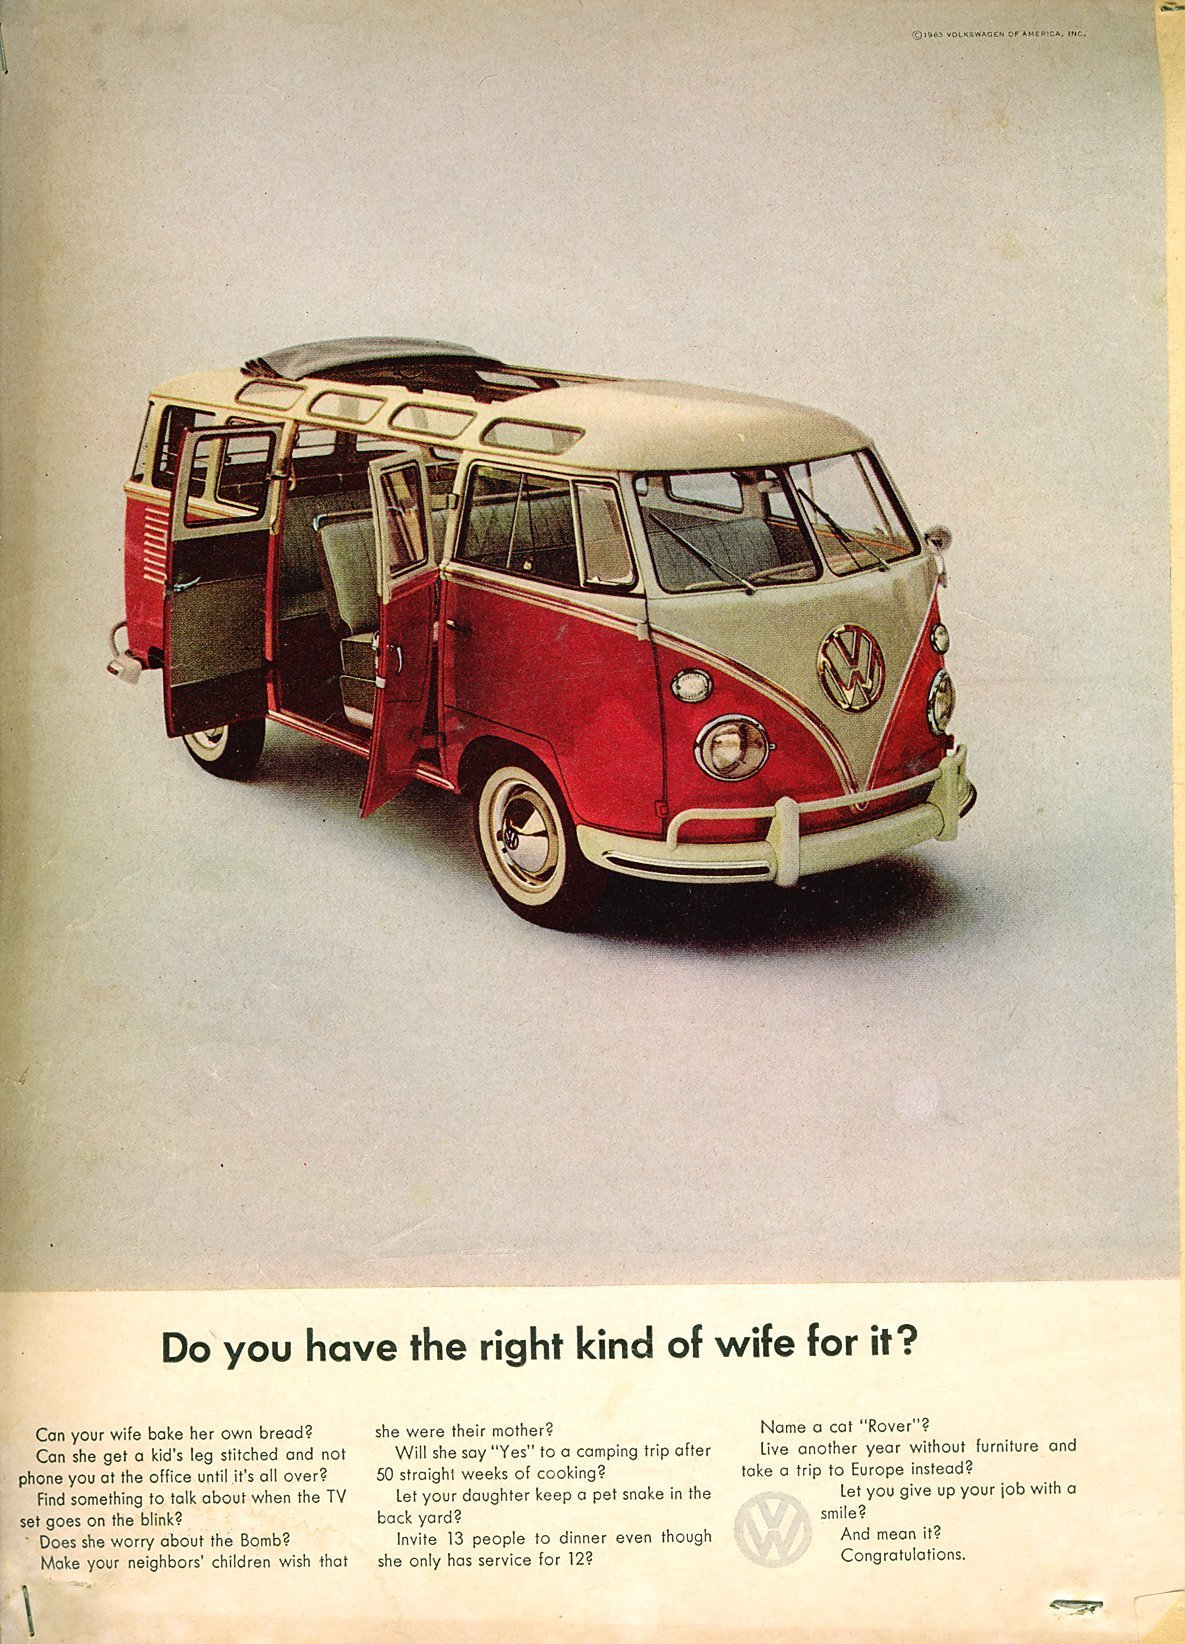 Best 1960s Classic Print Advertisements - Cigarettes, Alcohol, Cars - Thrillist